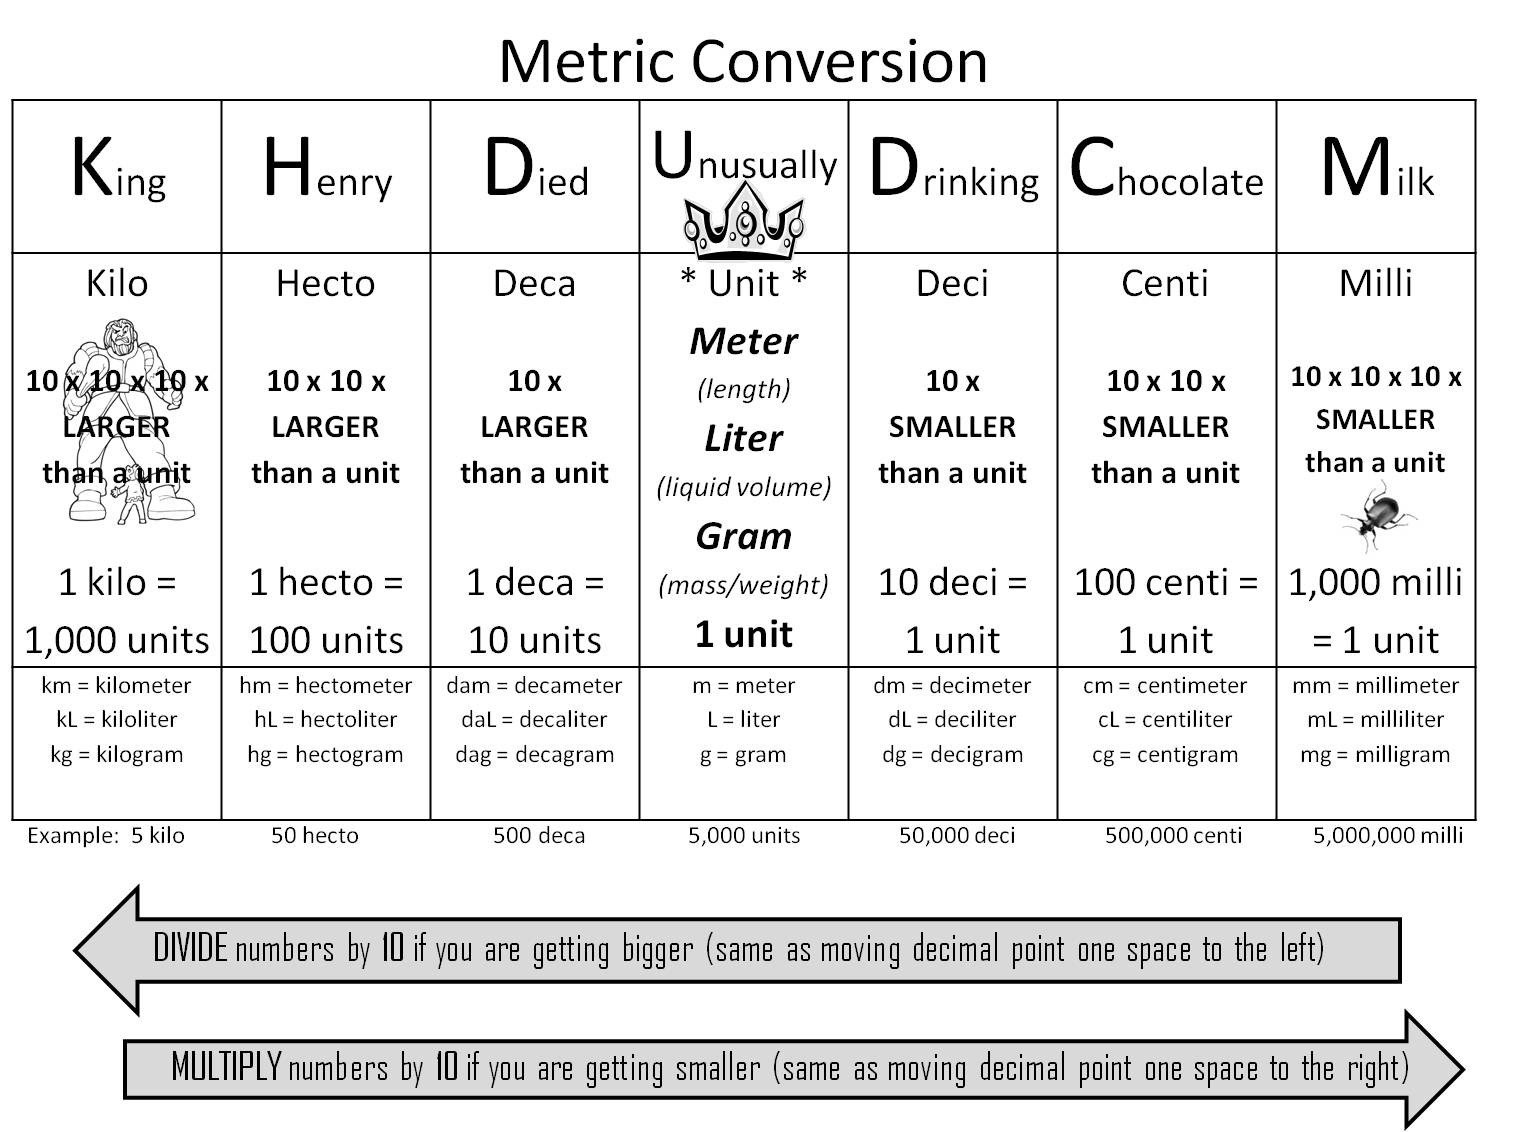 Metric Conversion Worksheets 5th Grade Ms Schermerhorn S 5th Grade Class [licensed for Non